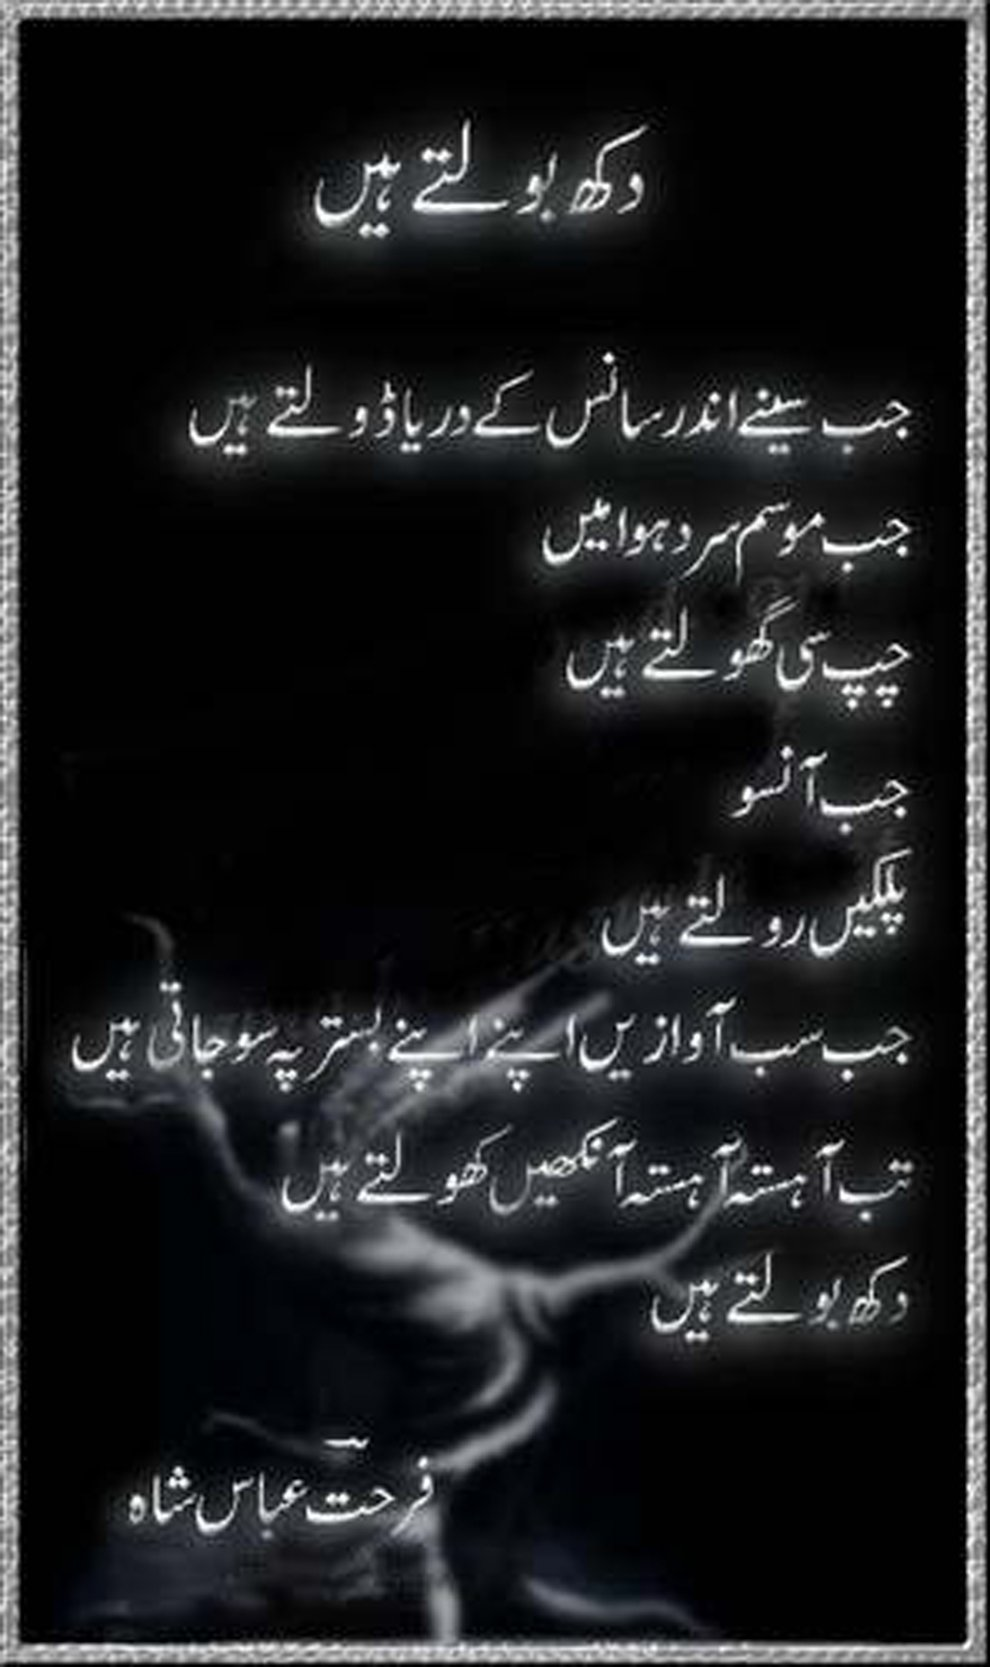 Wallpapers for Boys in Urdu Sad Wallpaper With Poetry Sad Poetry 990x1667